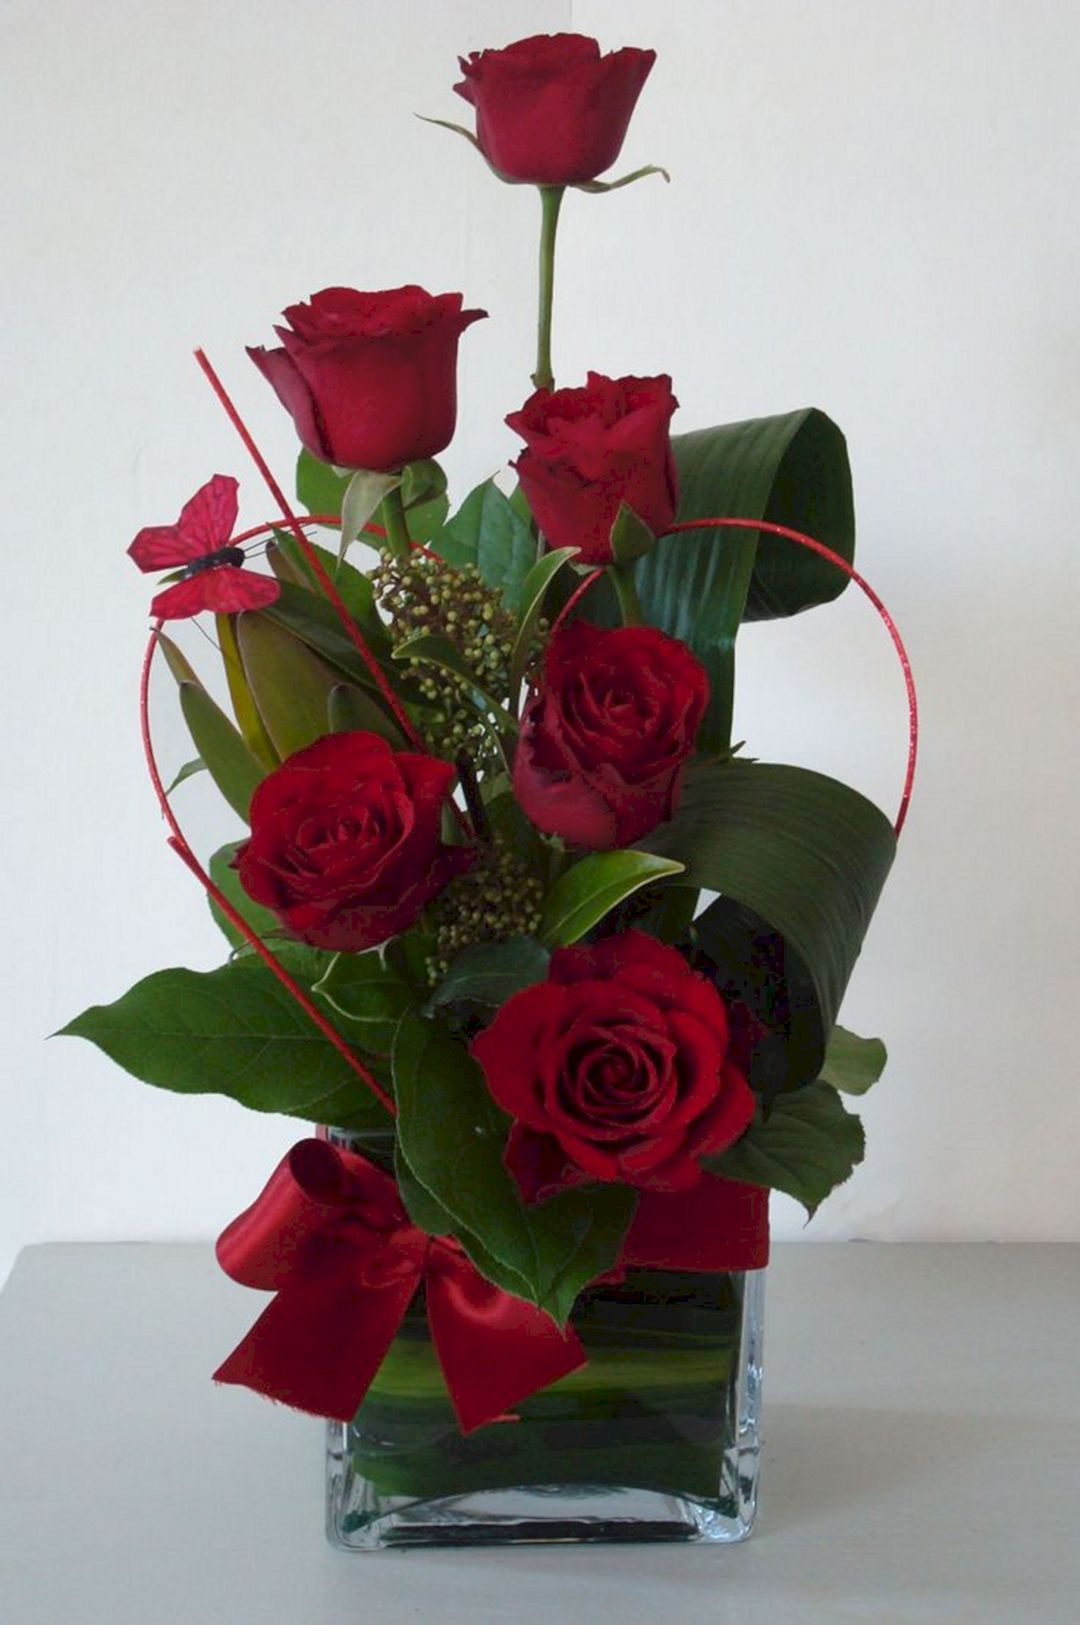 25 beautiful valentines day flowers arrangements for your beloved best 25 beautiful valentines day flowers arrangements for your beloved people izmirmasajfo